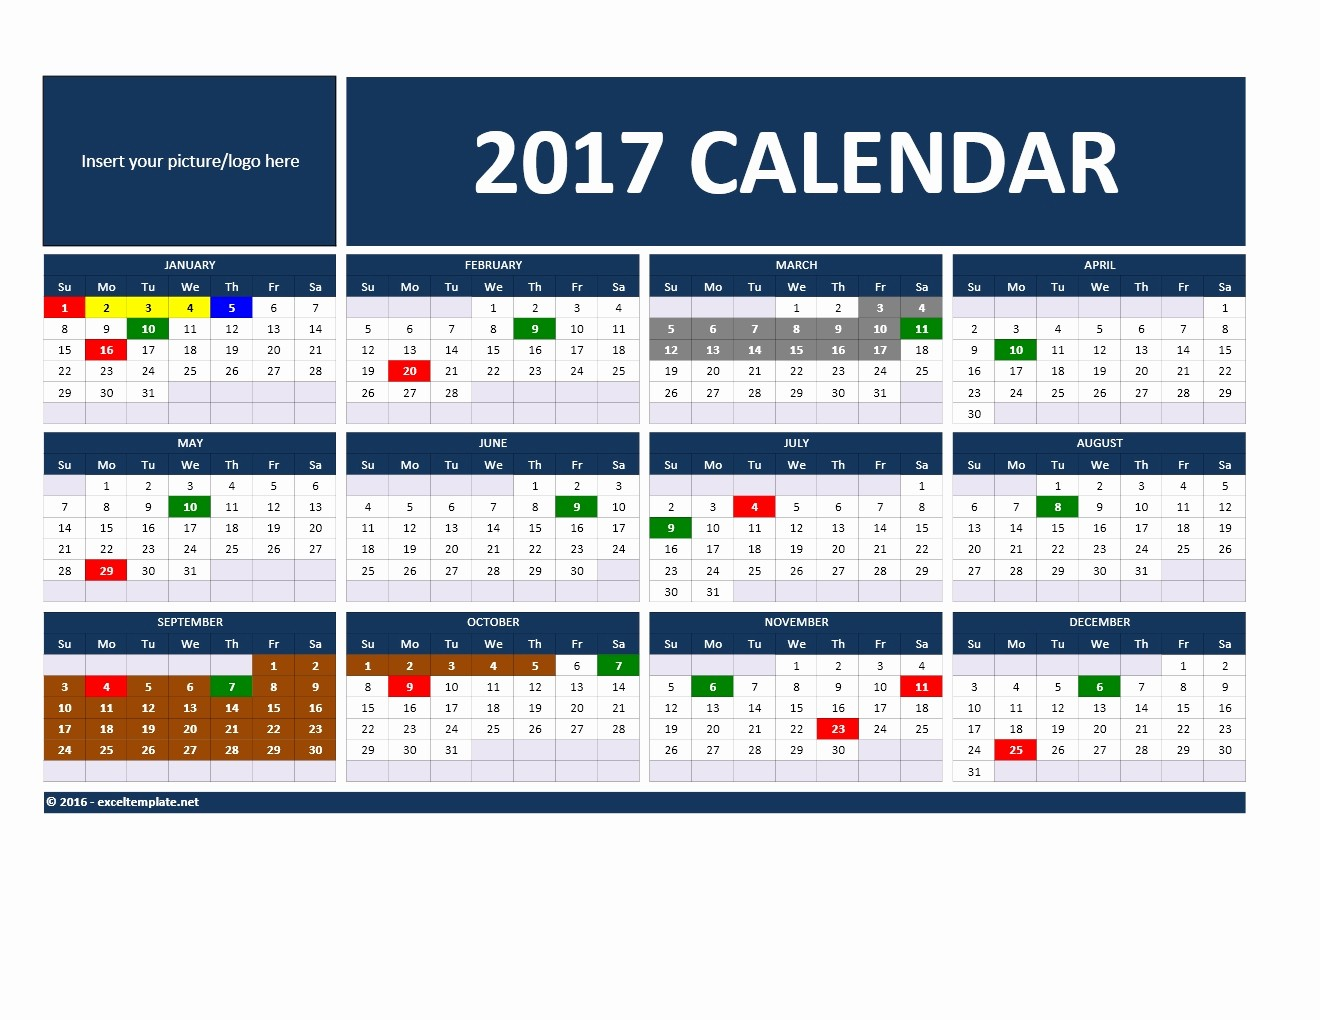 2017 Yearly Calendar Excel Template Best Of 2017 and 2018 Calendars